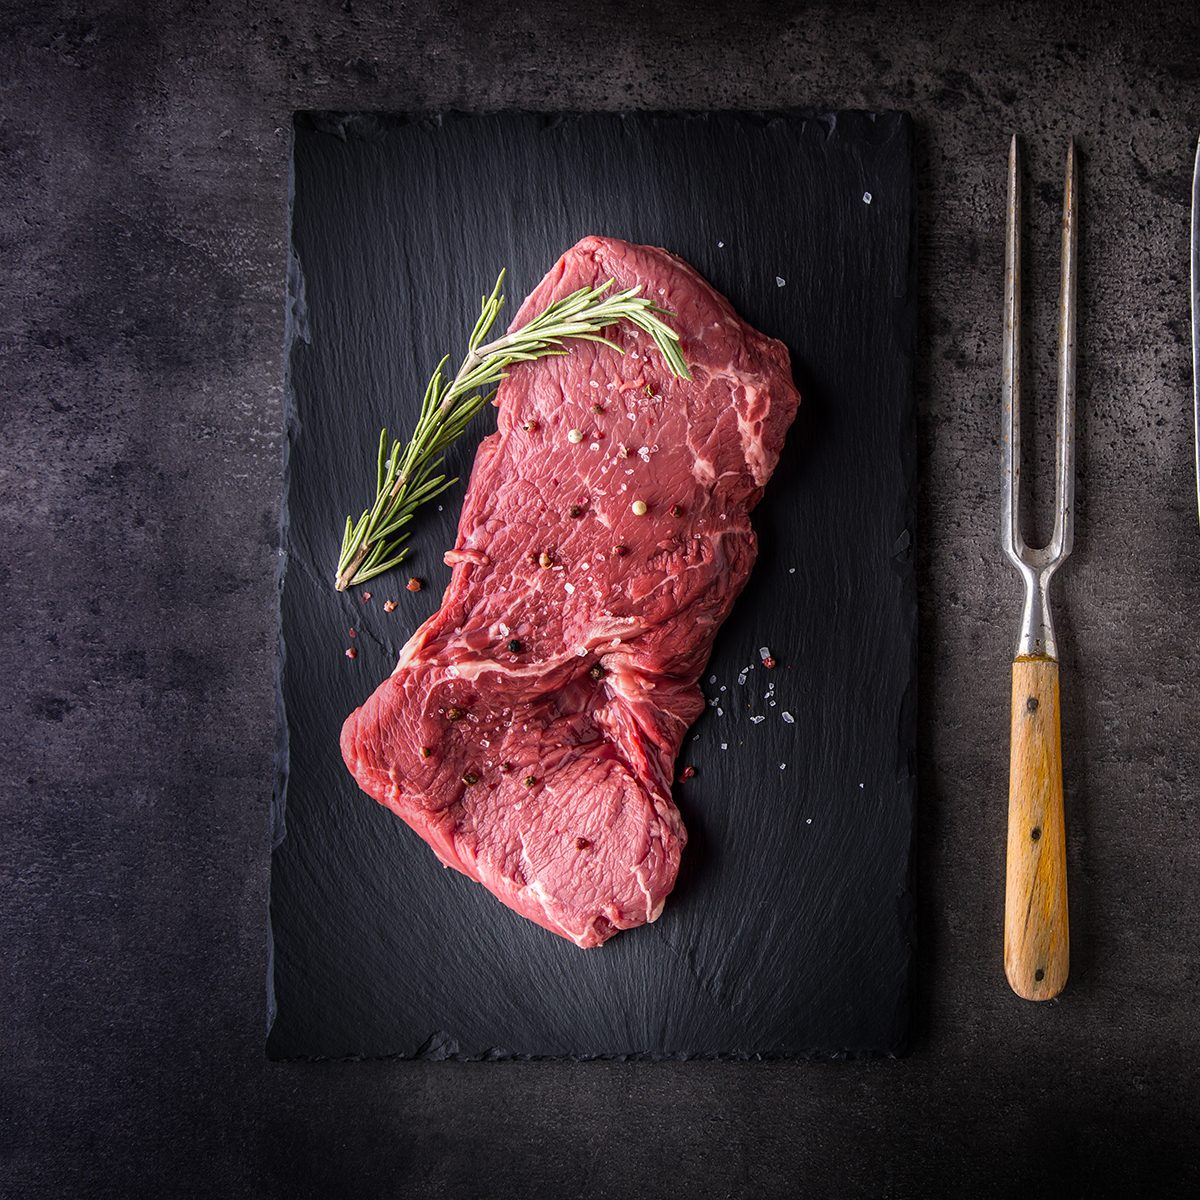 Beef raw rump steak with salt pepper rosemary butcher and fork.